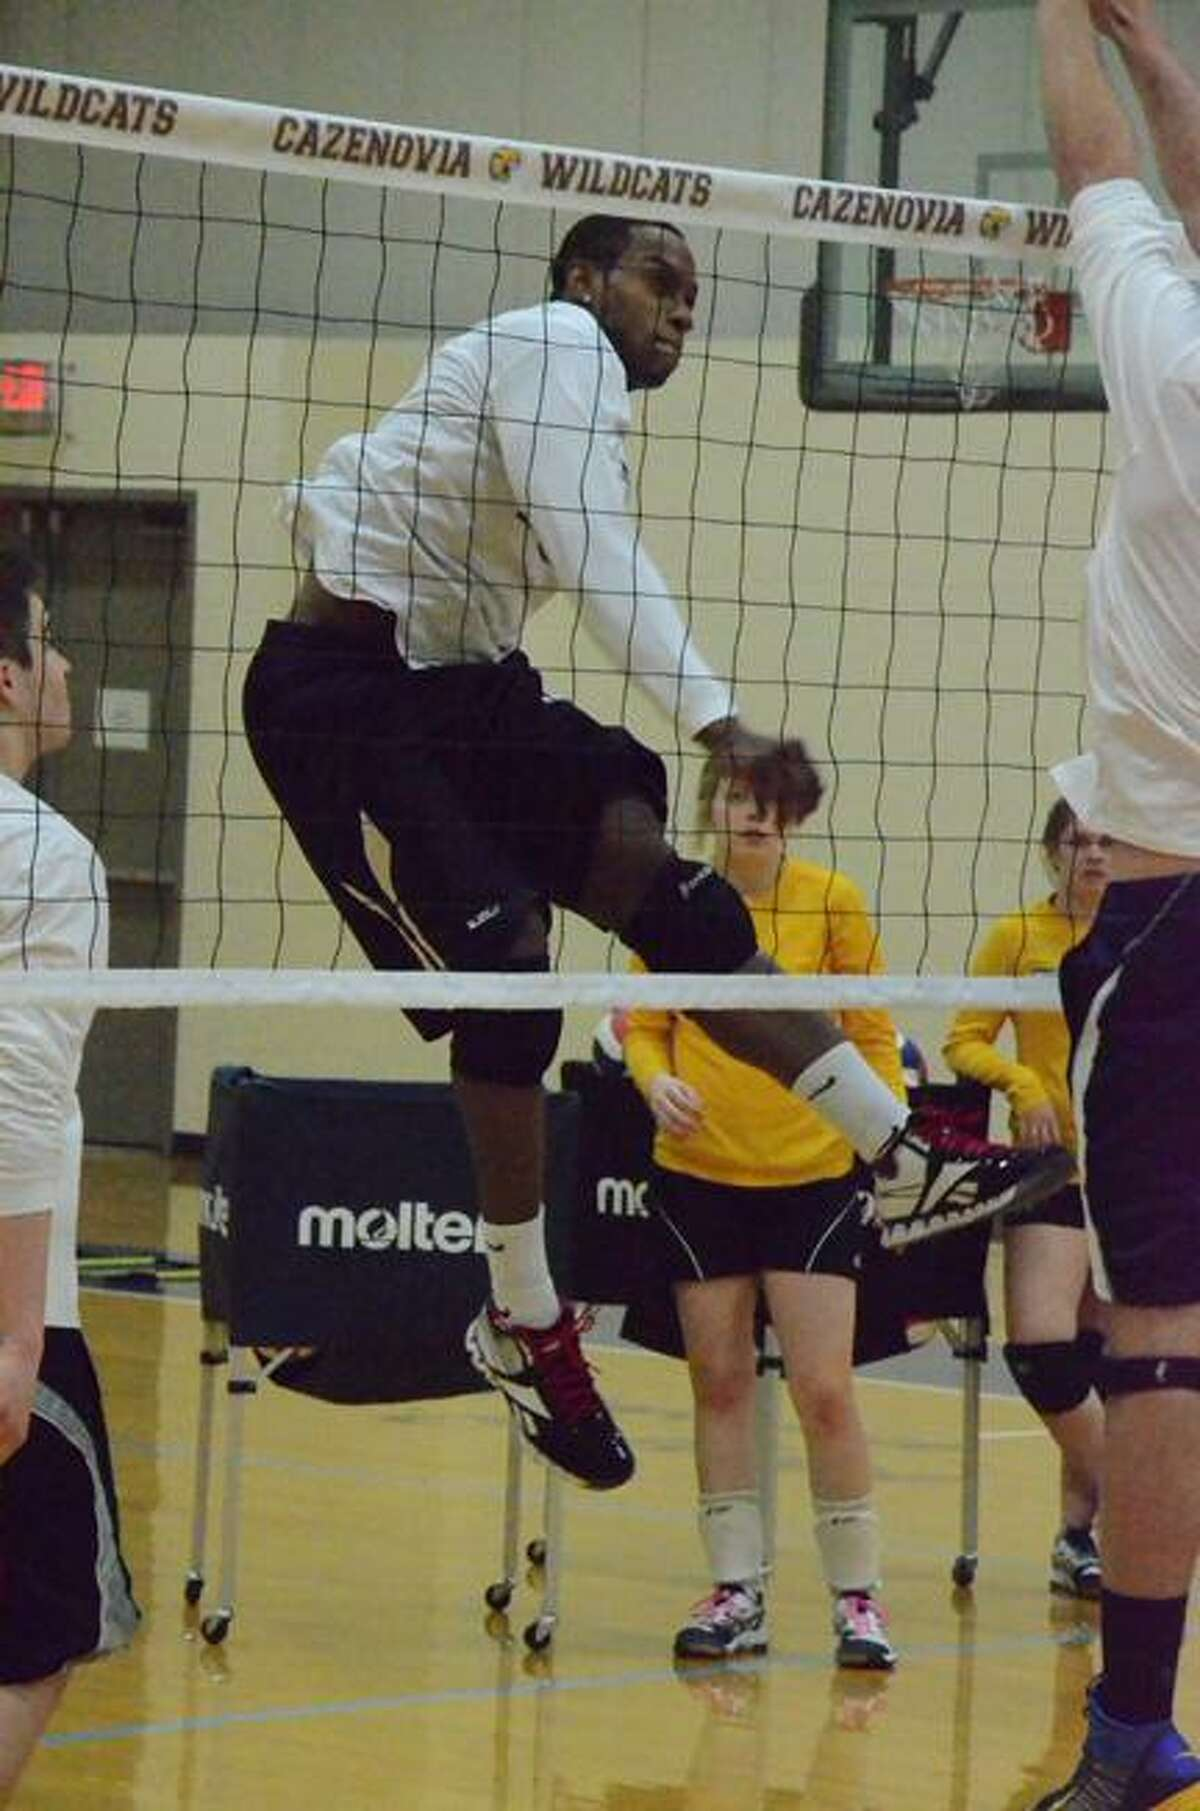 KYLE MENNIG/ONEIDA DAILY DISPATCH Cazenovia's Stanley McDaniel hits a ball during practice Monday. The senior is one of several Wildcats playing volleyball for the first time this year.